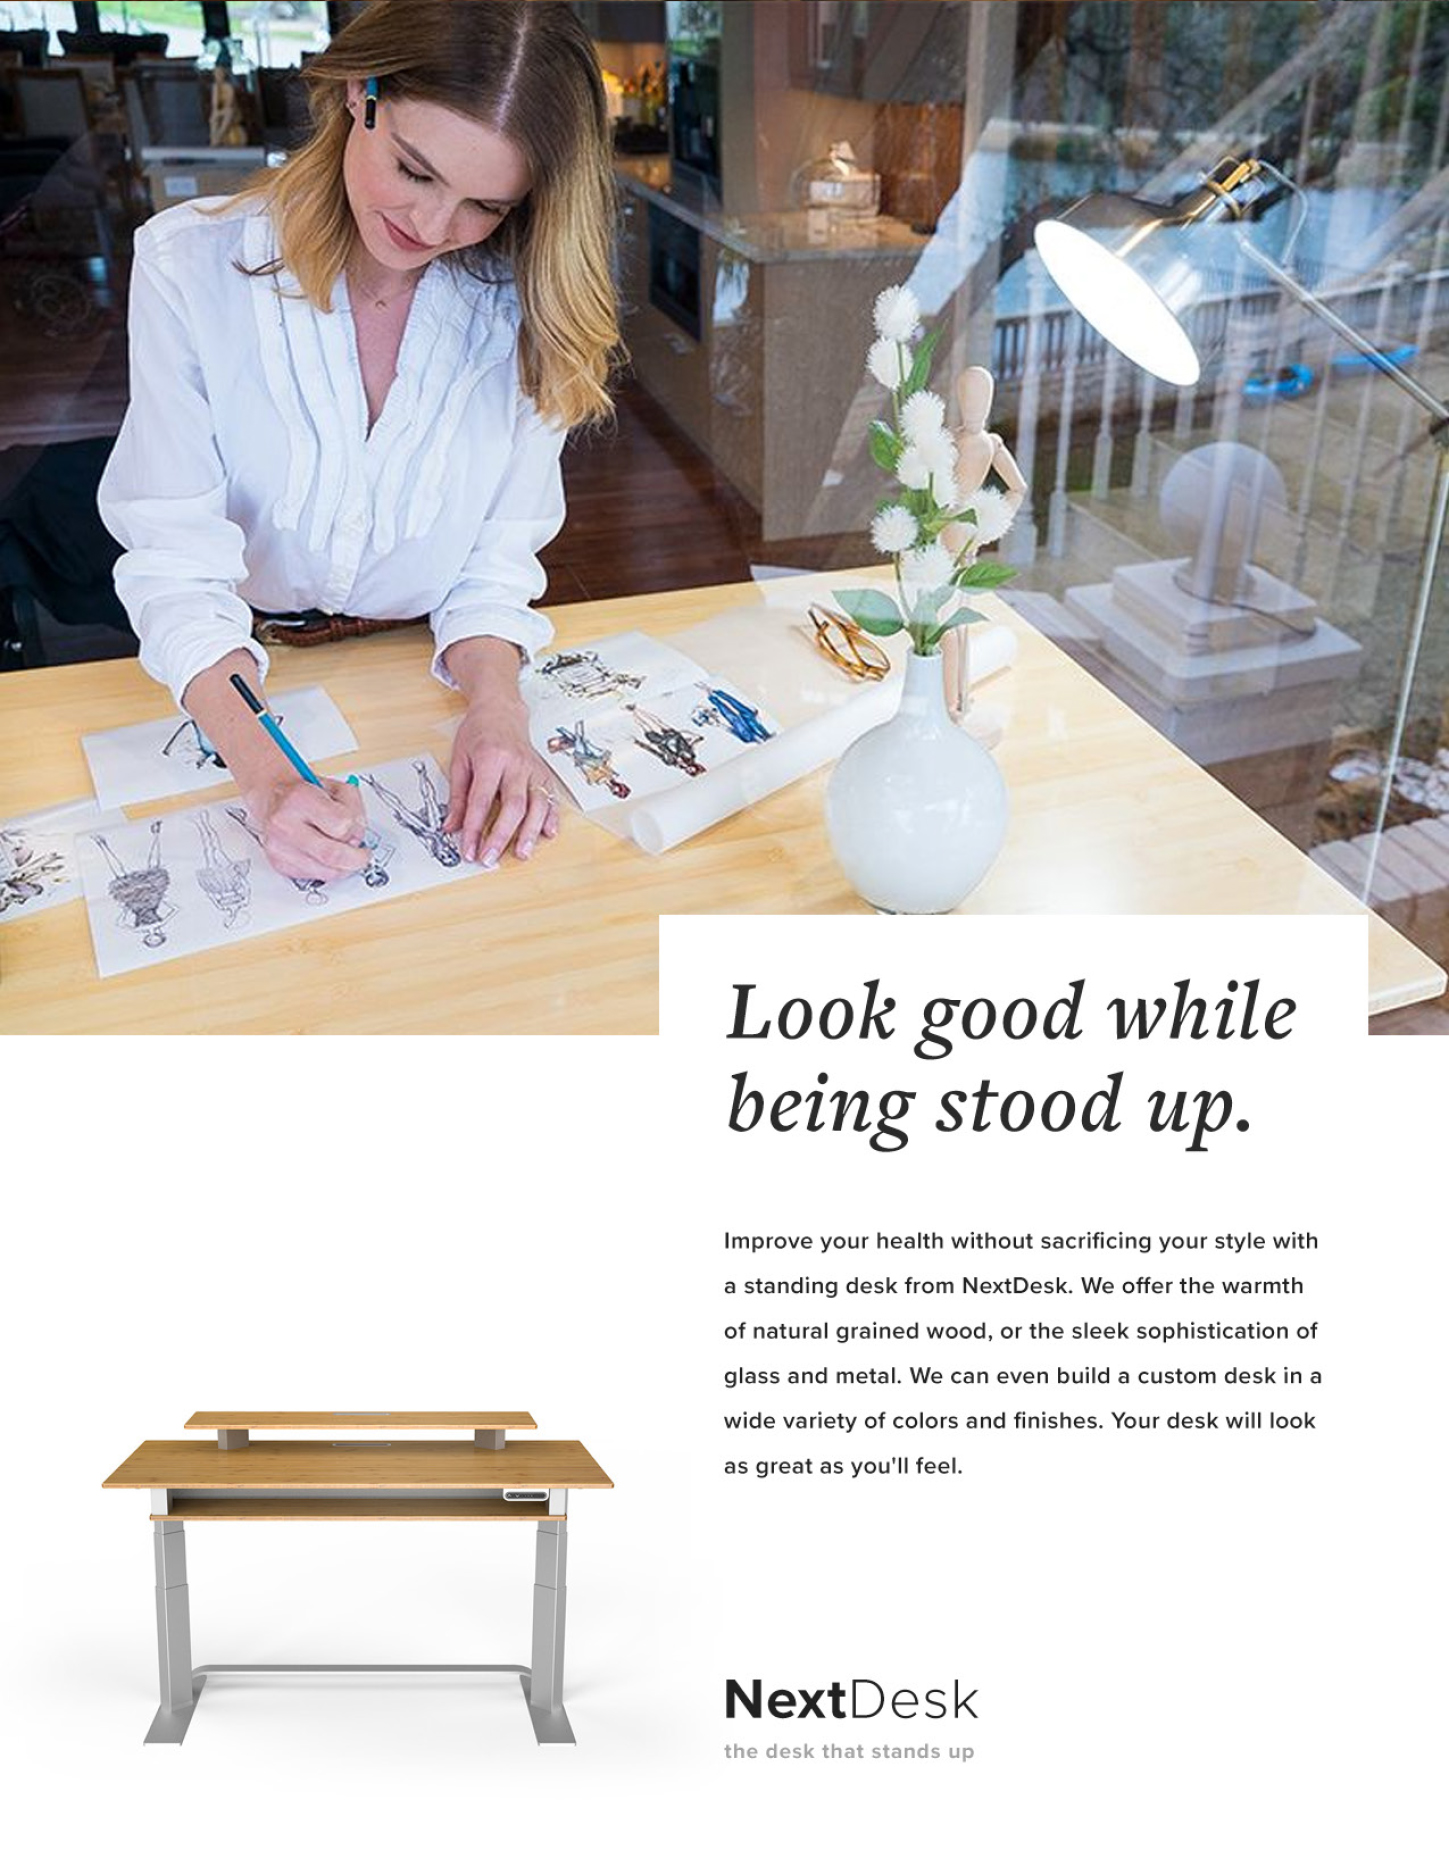 Look good while being stood up. - Improve your health without sacrificing your style with a standing desk from NextDesk. We offer the warmth of natural grained wood, or the sleek sophistication of glass and metal. We can even build a custom deck in a wide variety of colors and finishes. Your desk will look as great as you'll feel.